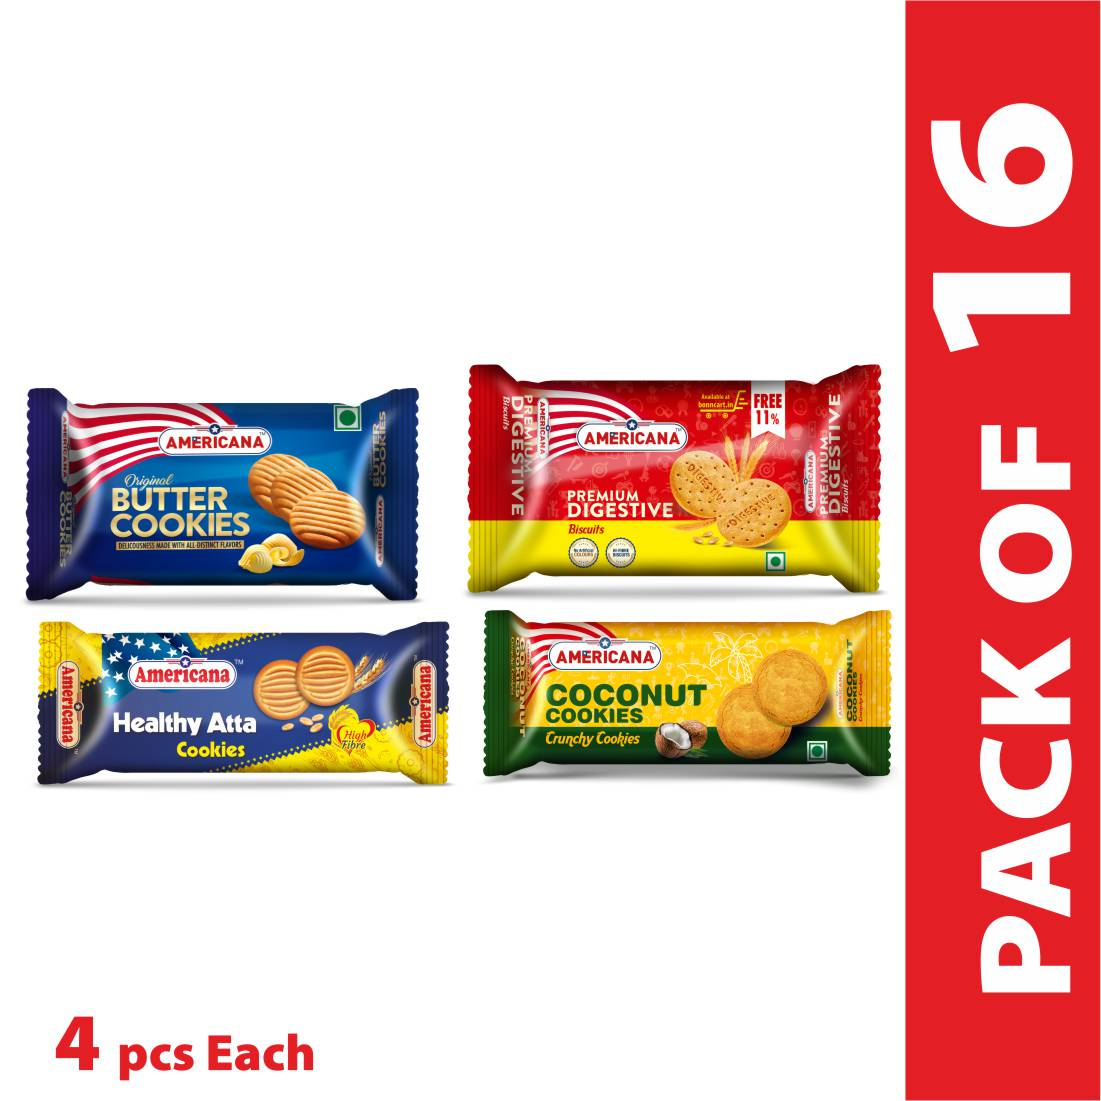 Americana cookies combo (Butter cookies 84g, Digestive Biscuit 78g, Coconut cookies 85g and Atta cookies 90g) 4 pack each